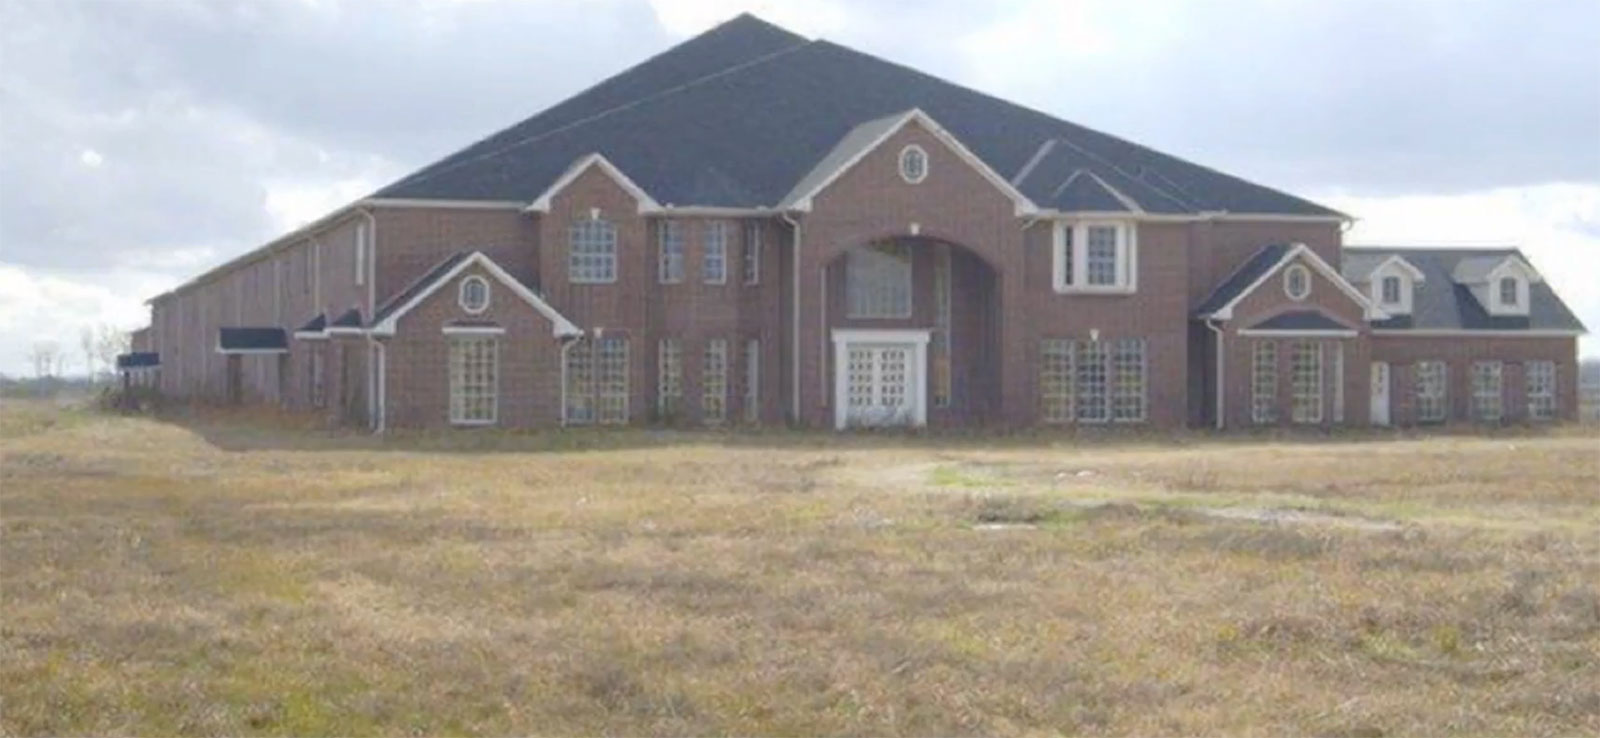 Massive 46 bedroom house up for sale in texas aol features for 46 bedroom texas mansion